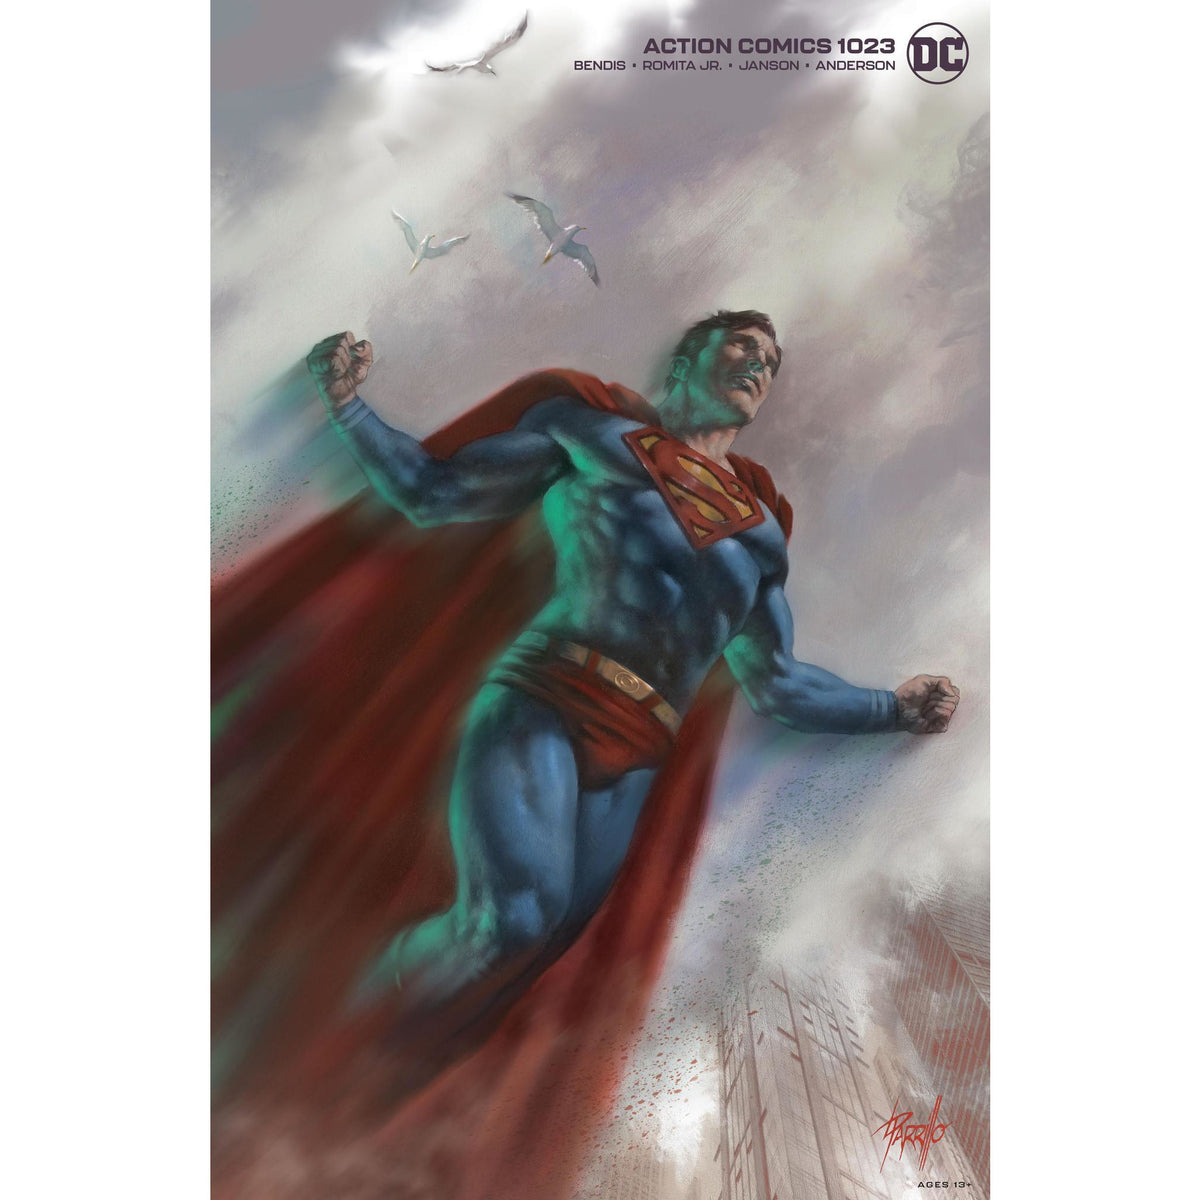 ACTION COMICS #1023 - PARRILLO VARIANT COVER B